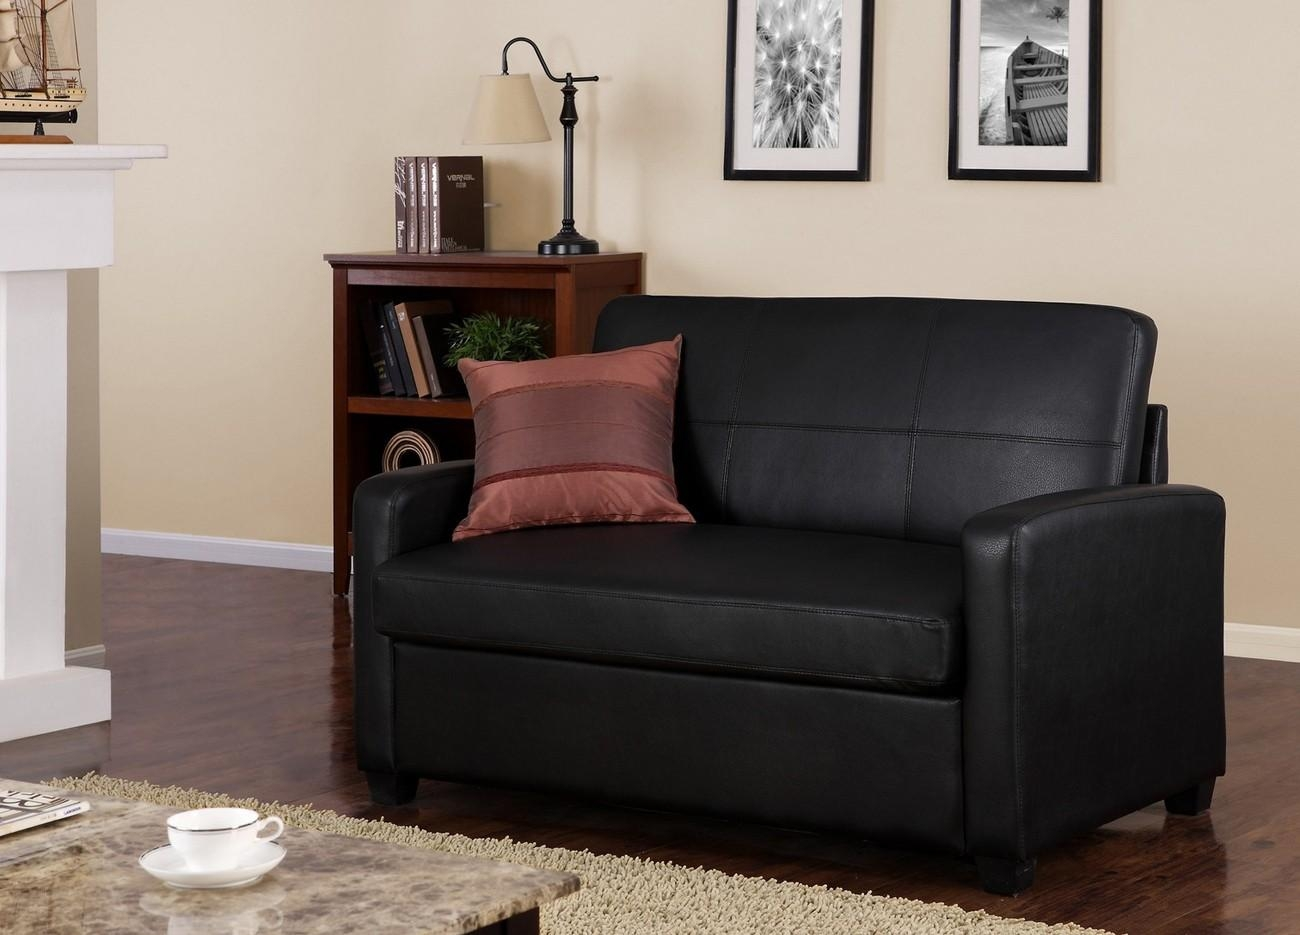 Mainstays | Black Faux Leather Sleeper Sofa With Regard To Mainstays Sleeper Sofas (Image 3 of 20)